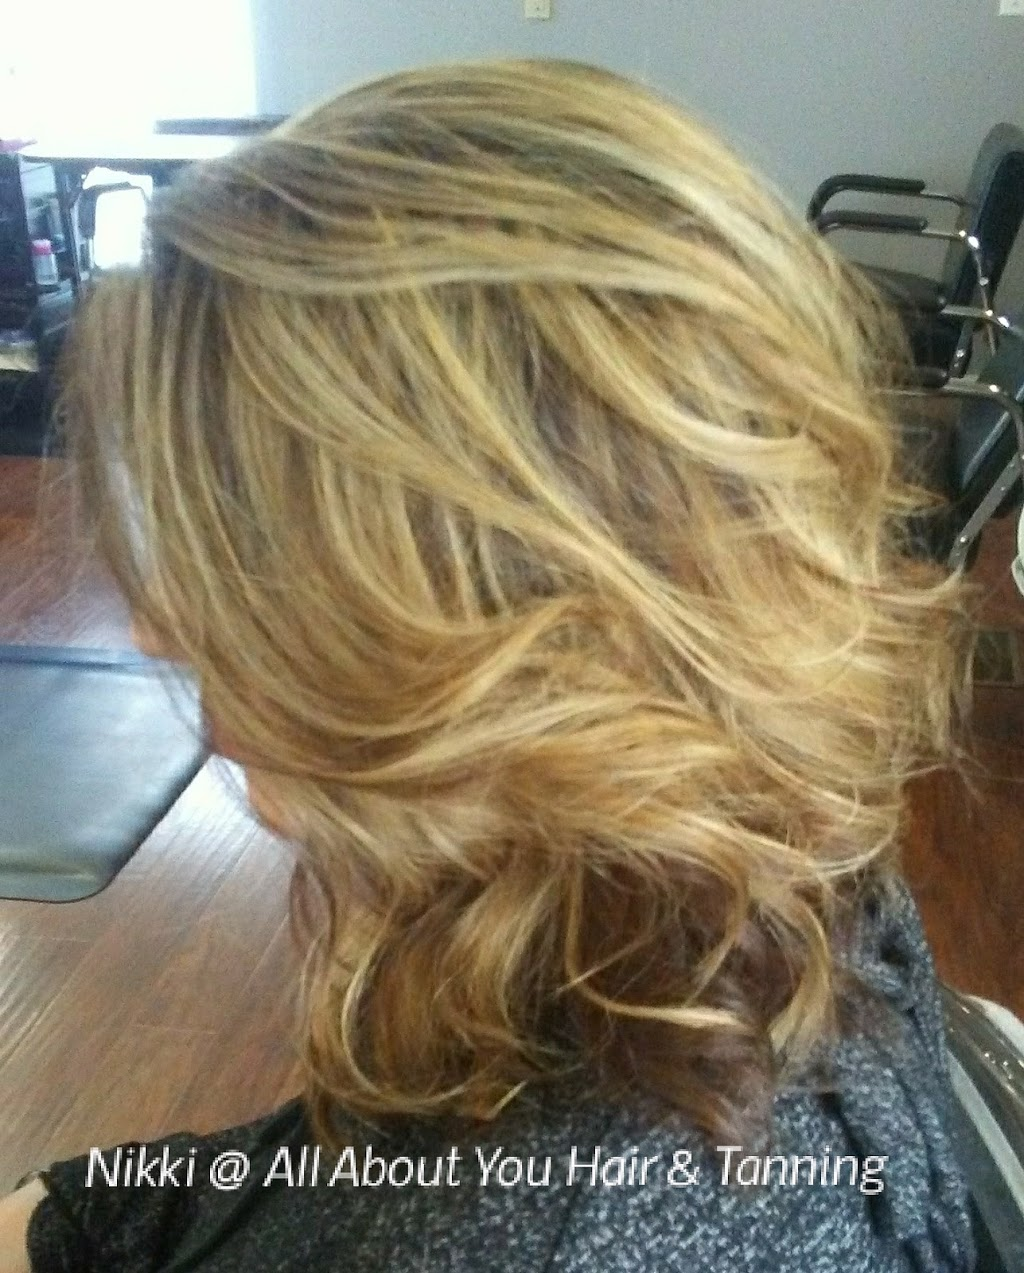 Nikkis Hair Shenanigans at All About You Hair And Tanning Salon - hair care  | Photo 1 of 10 | Address: 9227 County Line Rd, De Motte, IN 46310, USA | Phone: (765) 761-7119